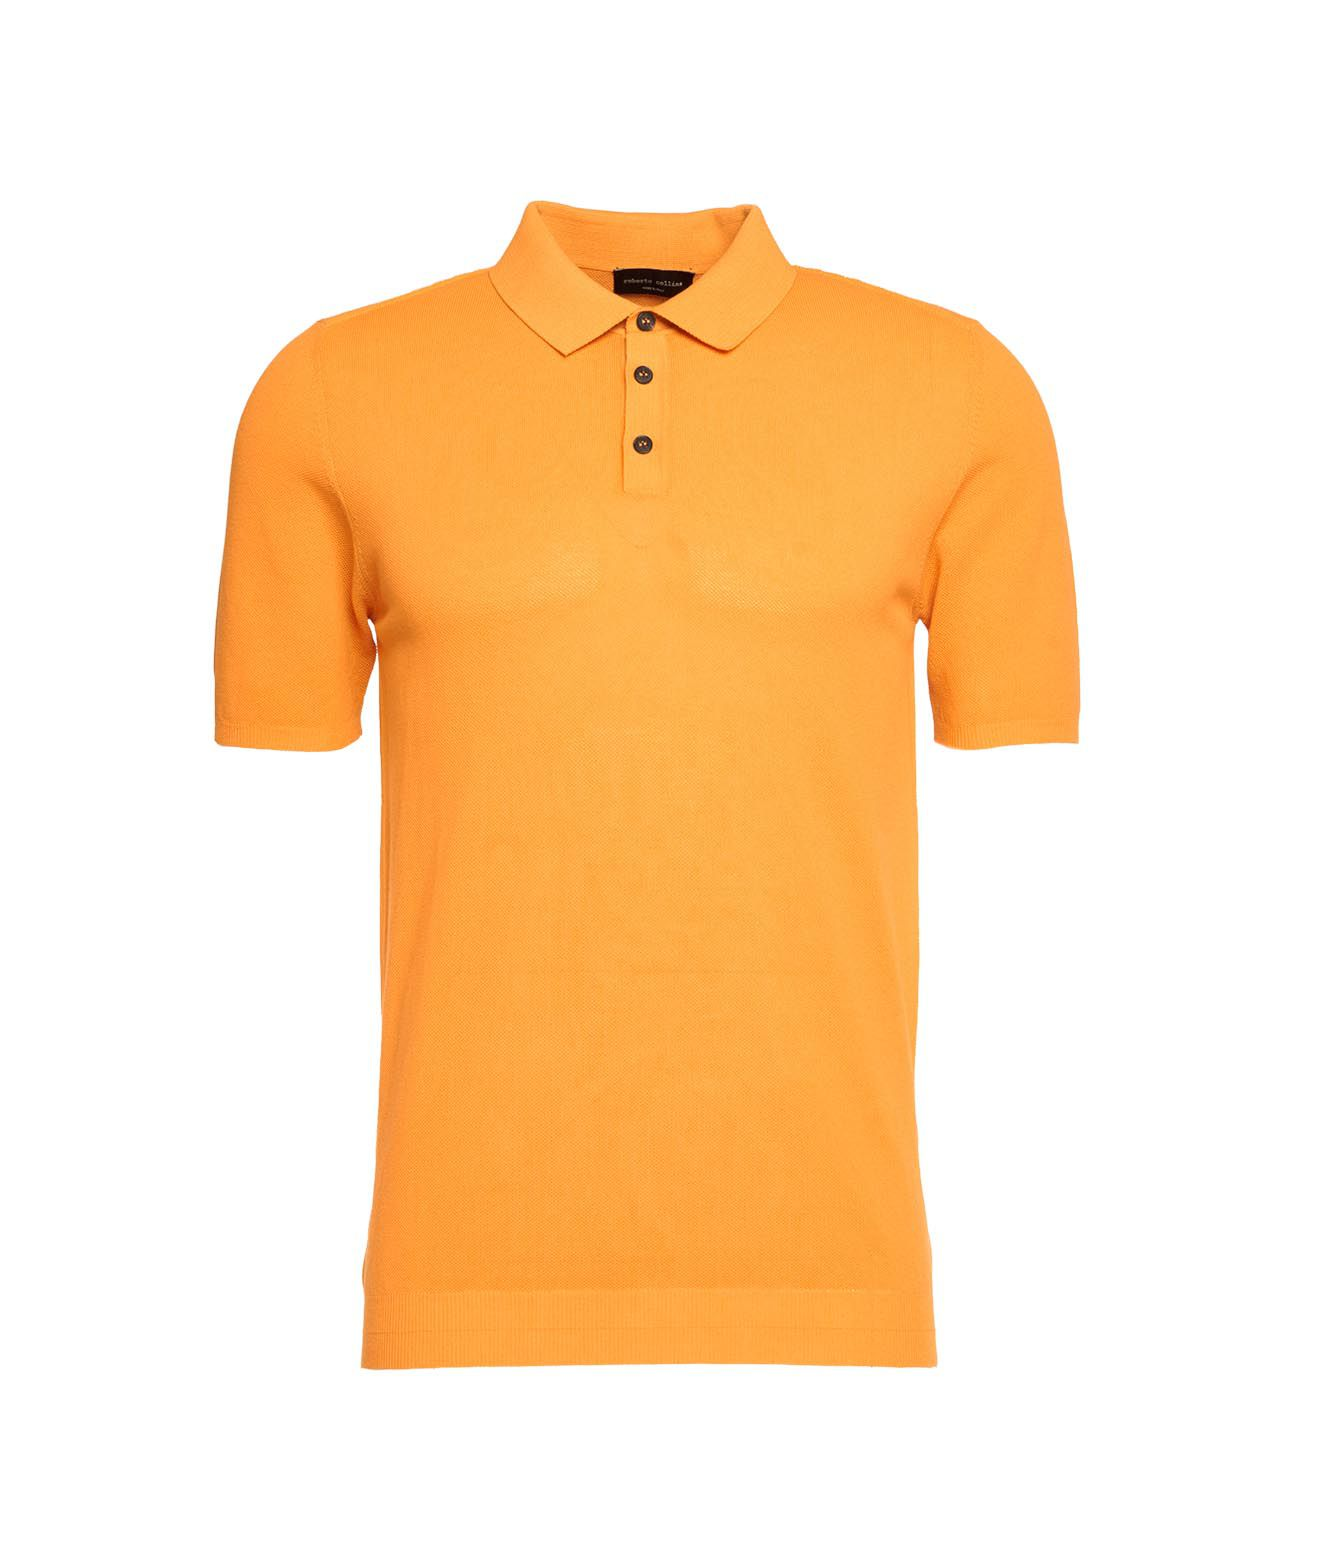 Roberto Collina POLO WITH STRUCTURE